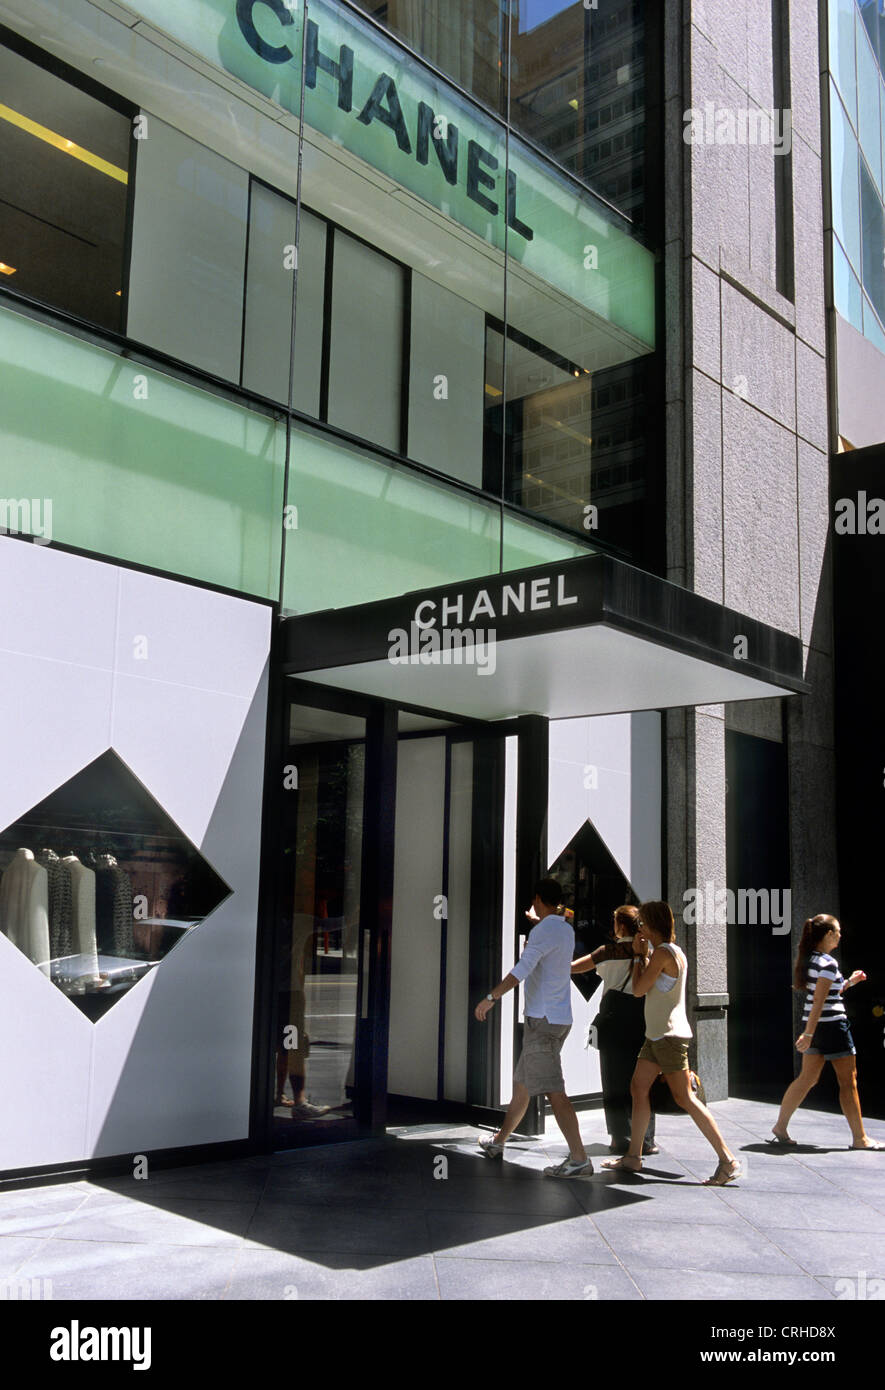 0b76a12b336 New York City People Entering and Leaving the Chanel Store on 57th Street  Midtown Manhattan USA